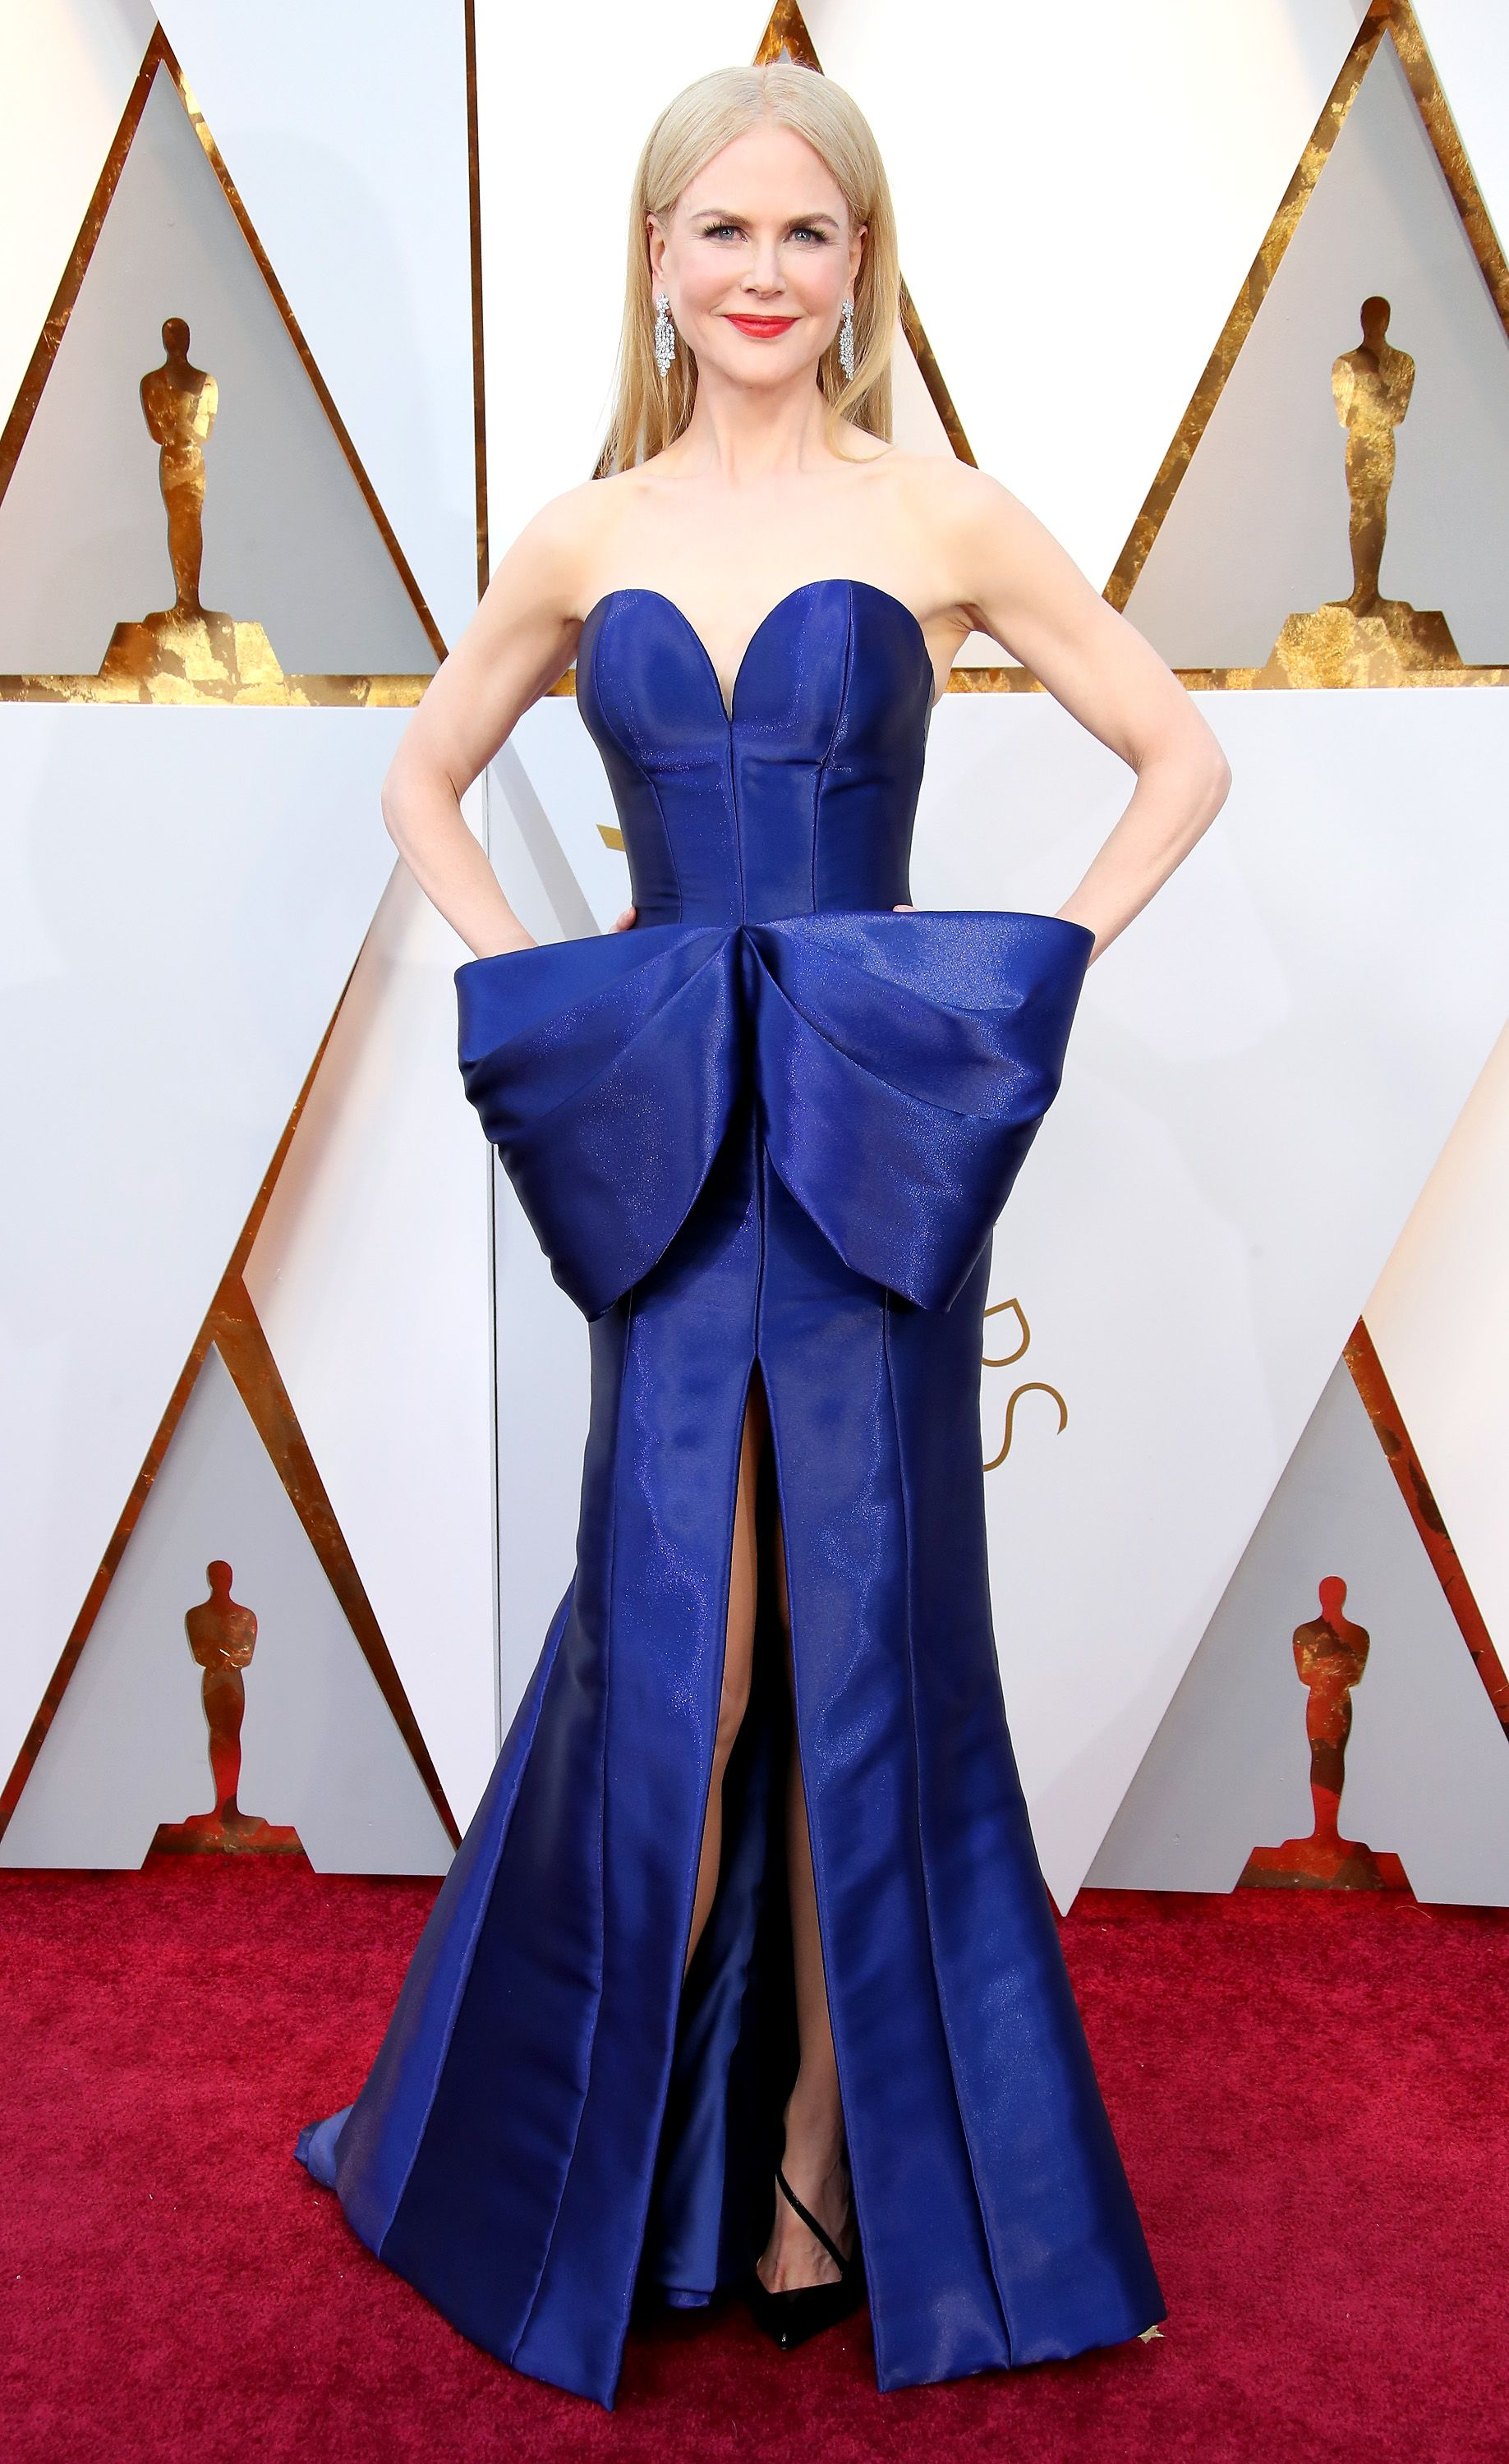 Nicole Kidman, 2018 We can't stop staring at this royal blue Armani gown—complete with a corset, bow, and slit—on Nicole Kidman at the 2018 Oscars. It perfectly complements her skin tone, too.